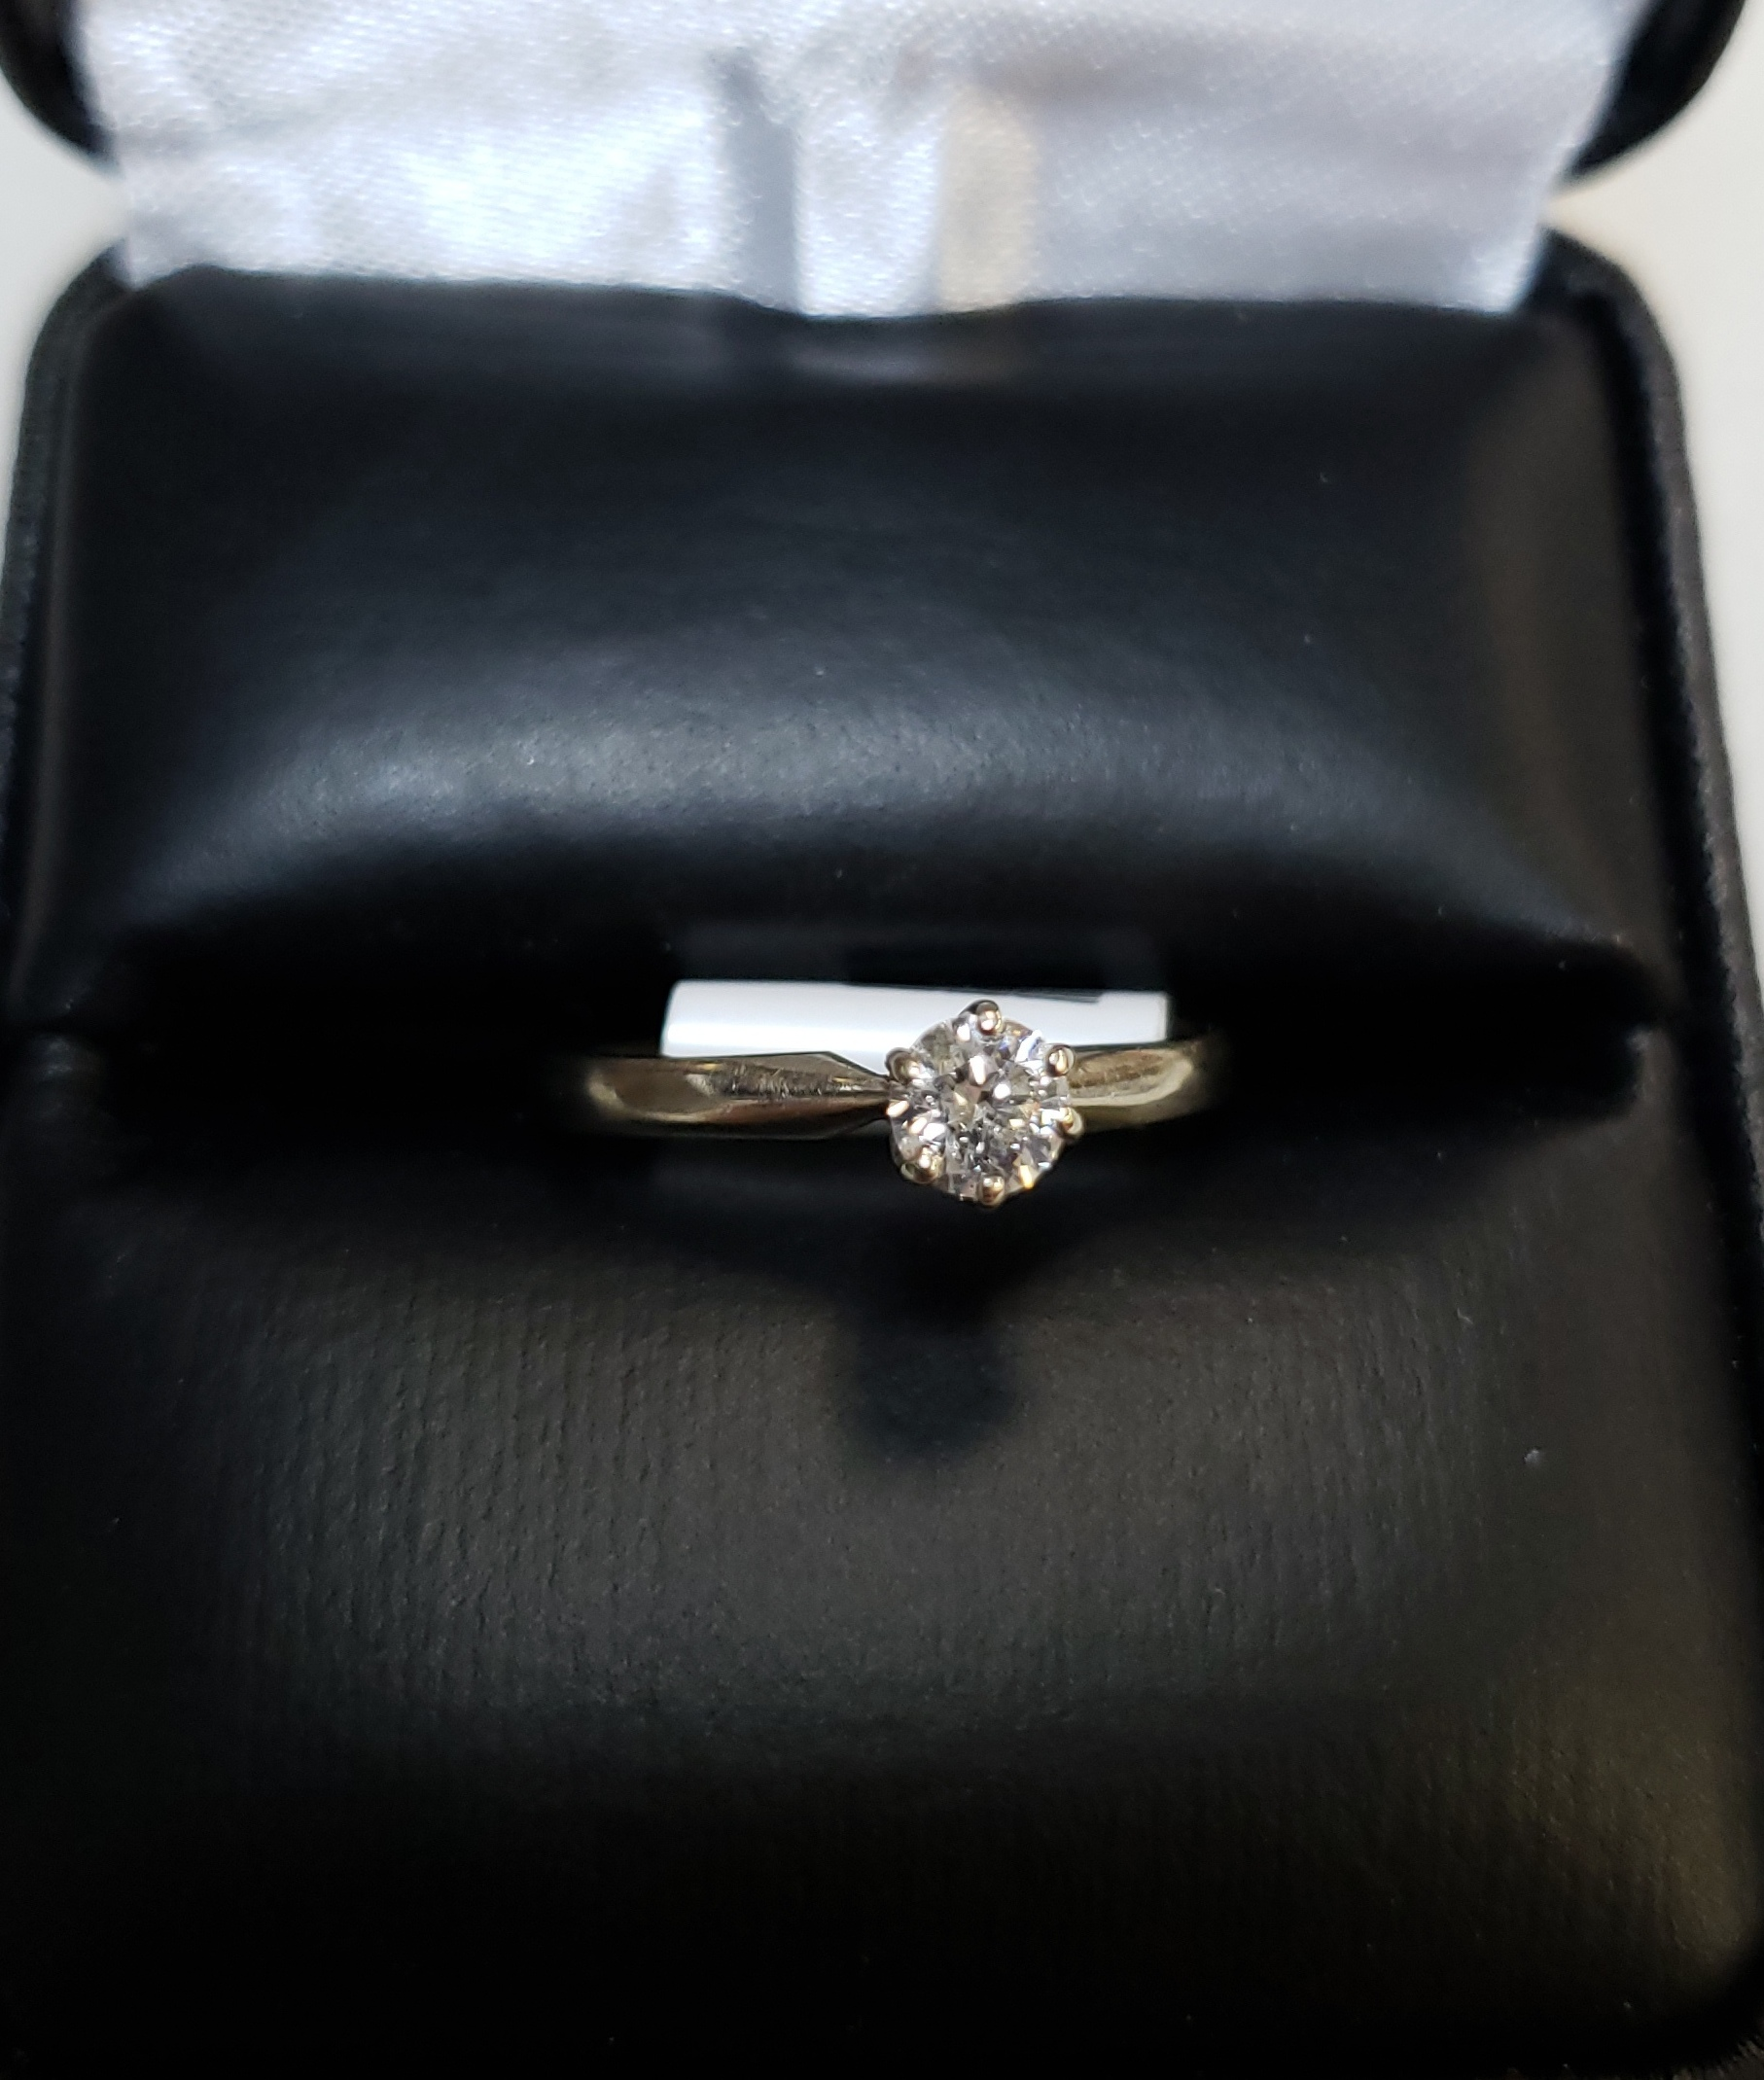 14KT - WHITE GOLD - APPROXIMATELY 1/5 CTW SOLITAIRE DIAMOND RING